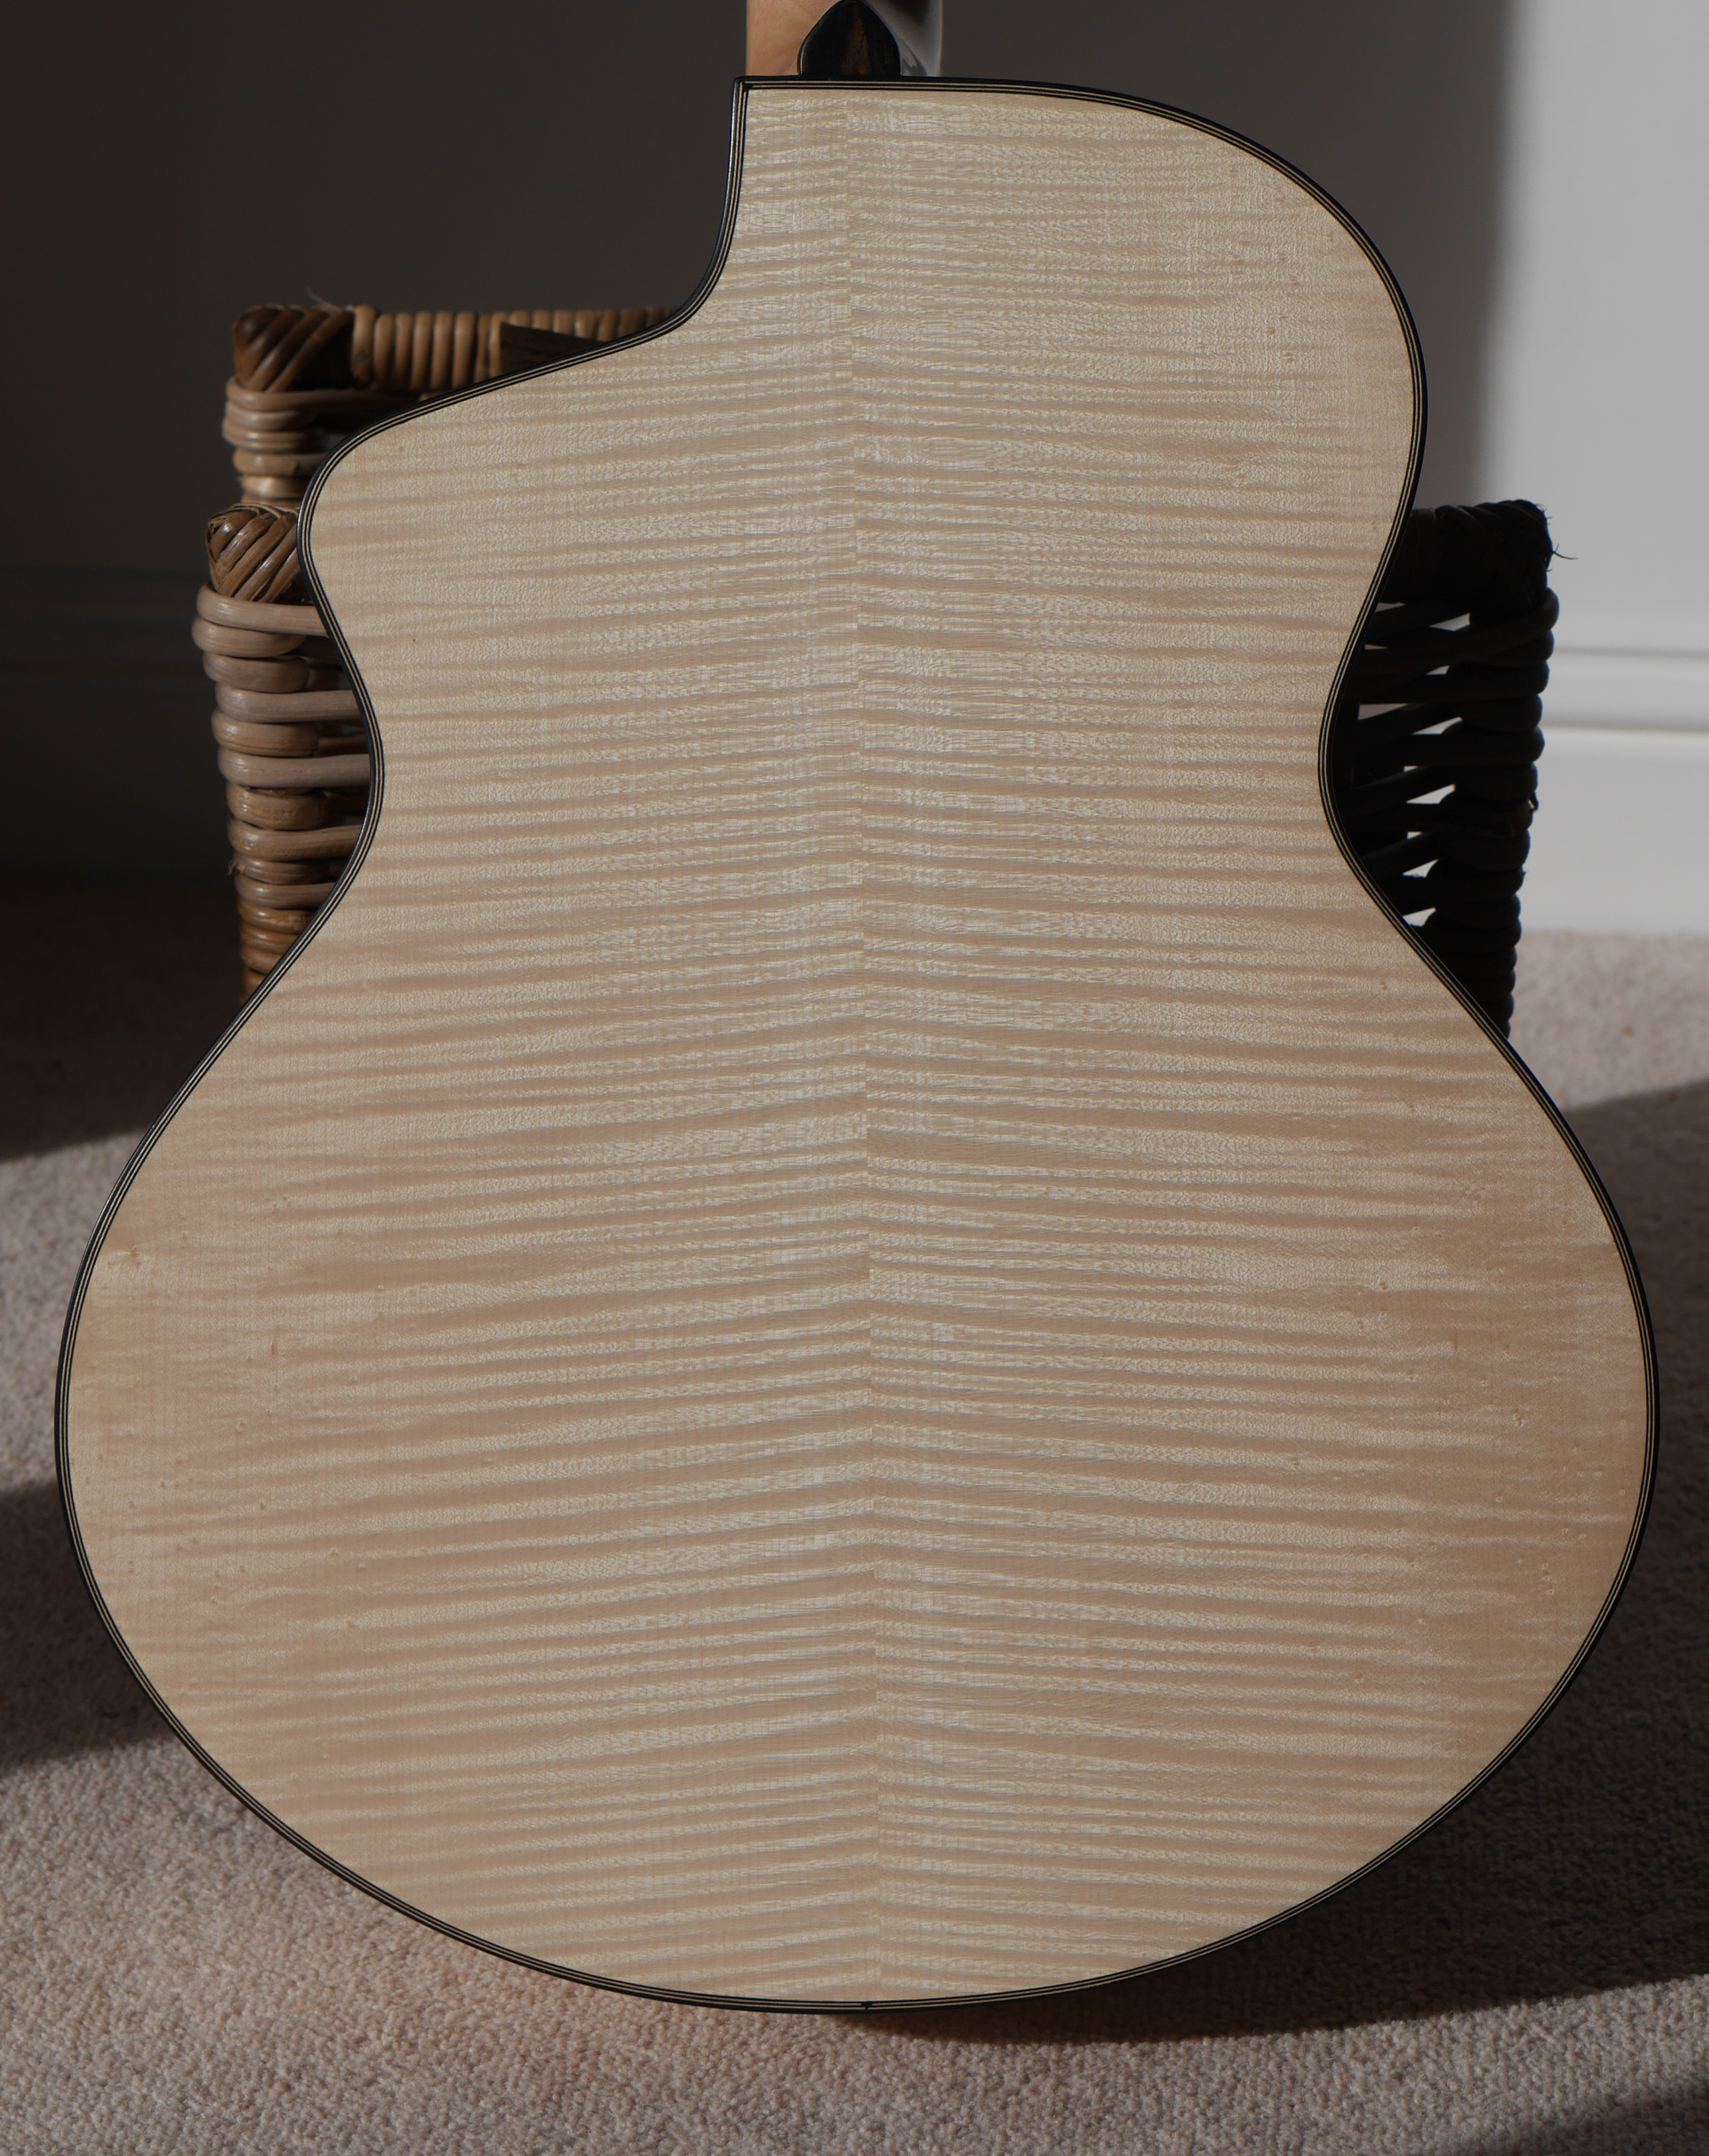 12th fret jumbo, flammed maple, montgomery guitars, custom guitar, andreas, carrickfergus